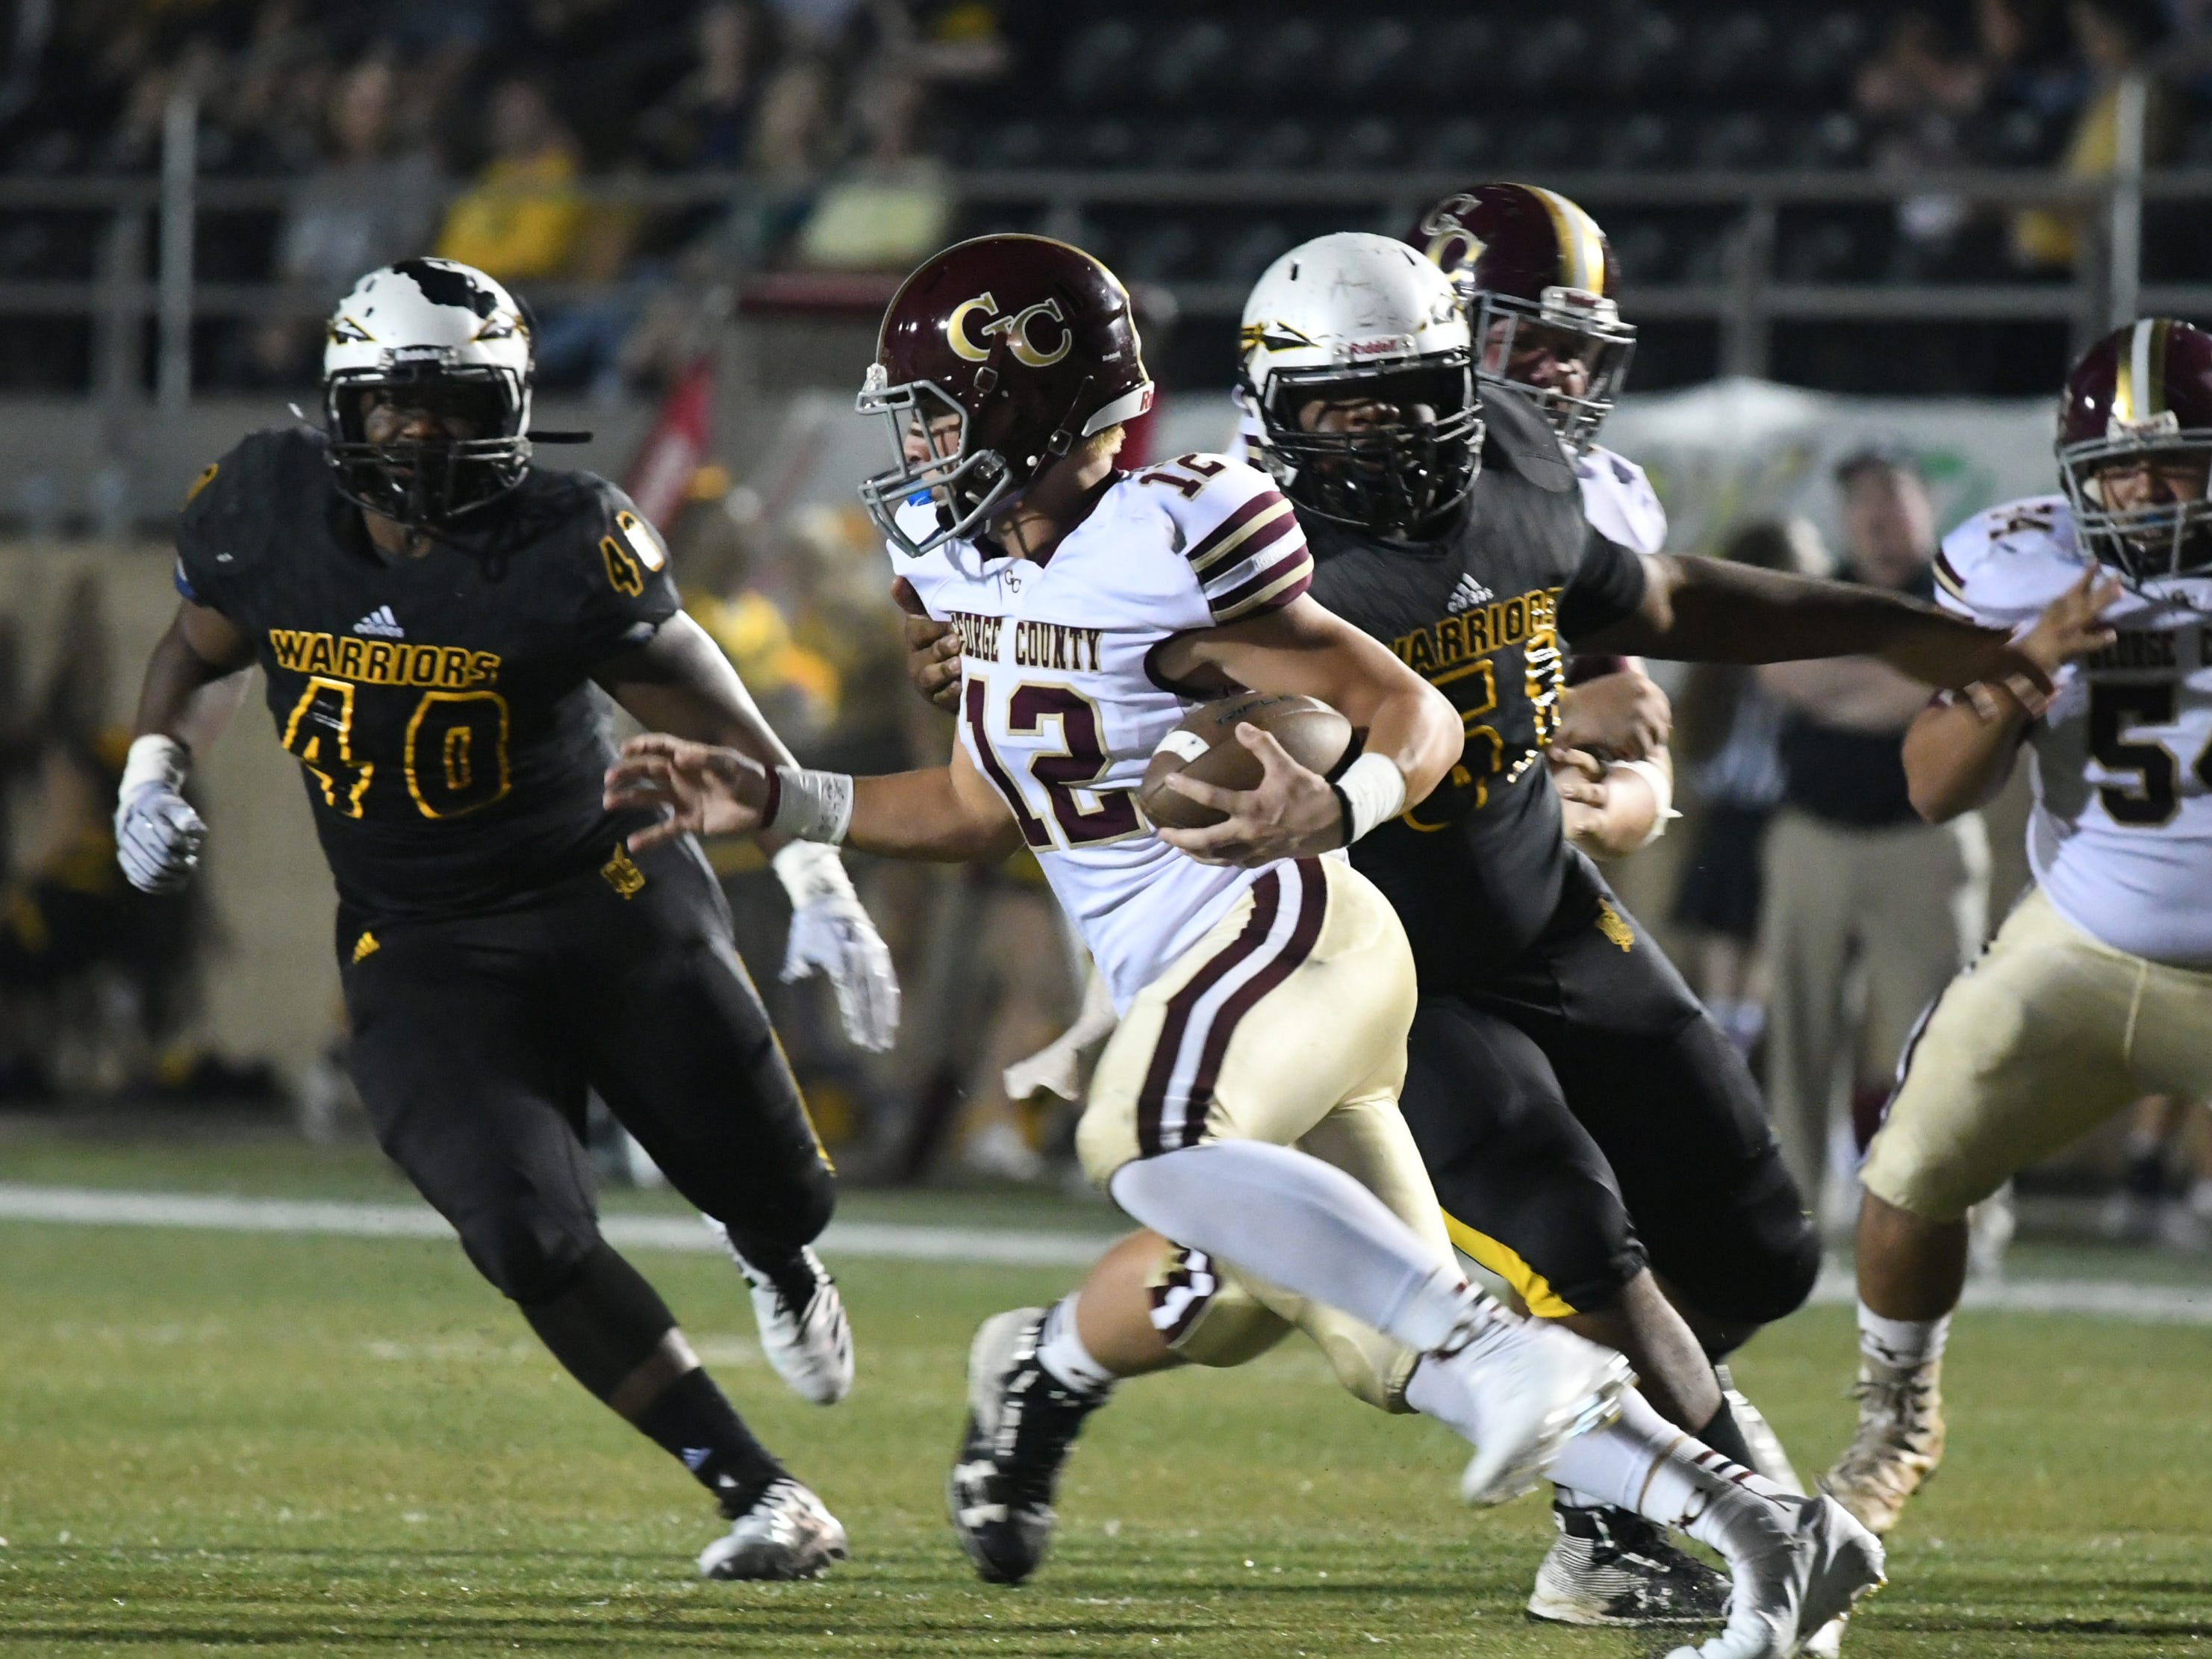 Oak Grove defensive players attempt to tackle George County quarterback Jonathan Havard in Hattiesburg on Friday, September 21, 2018.